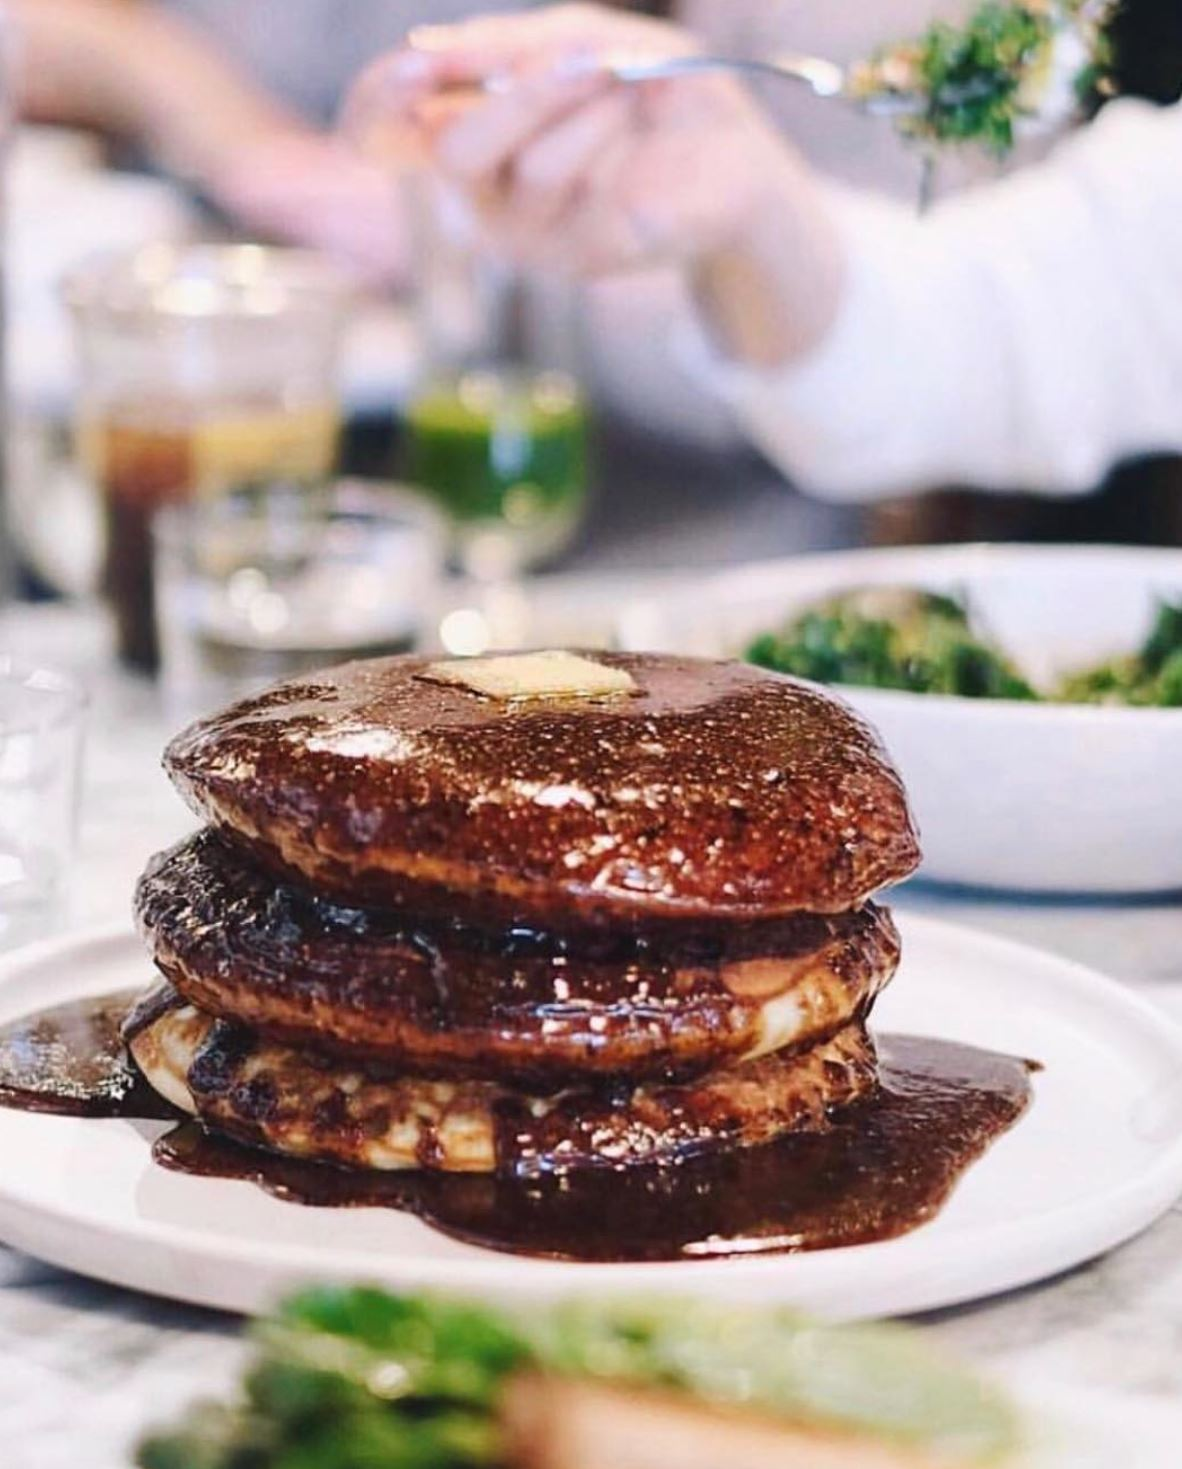 SUNDAY IN BROOKLYN: BRUNCH - MALTED PANCAKES, HAZELNUT MAPLE PRALINE, BROWN BUTTER